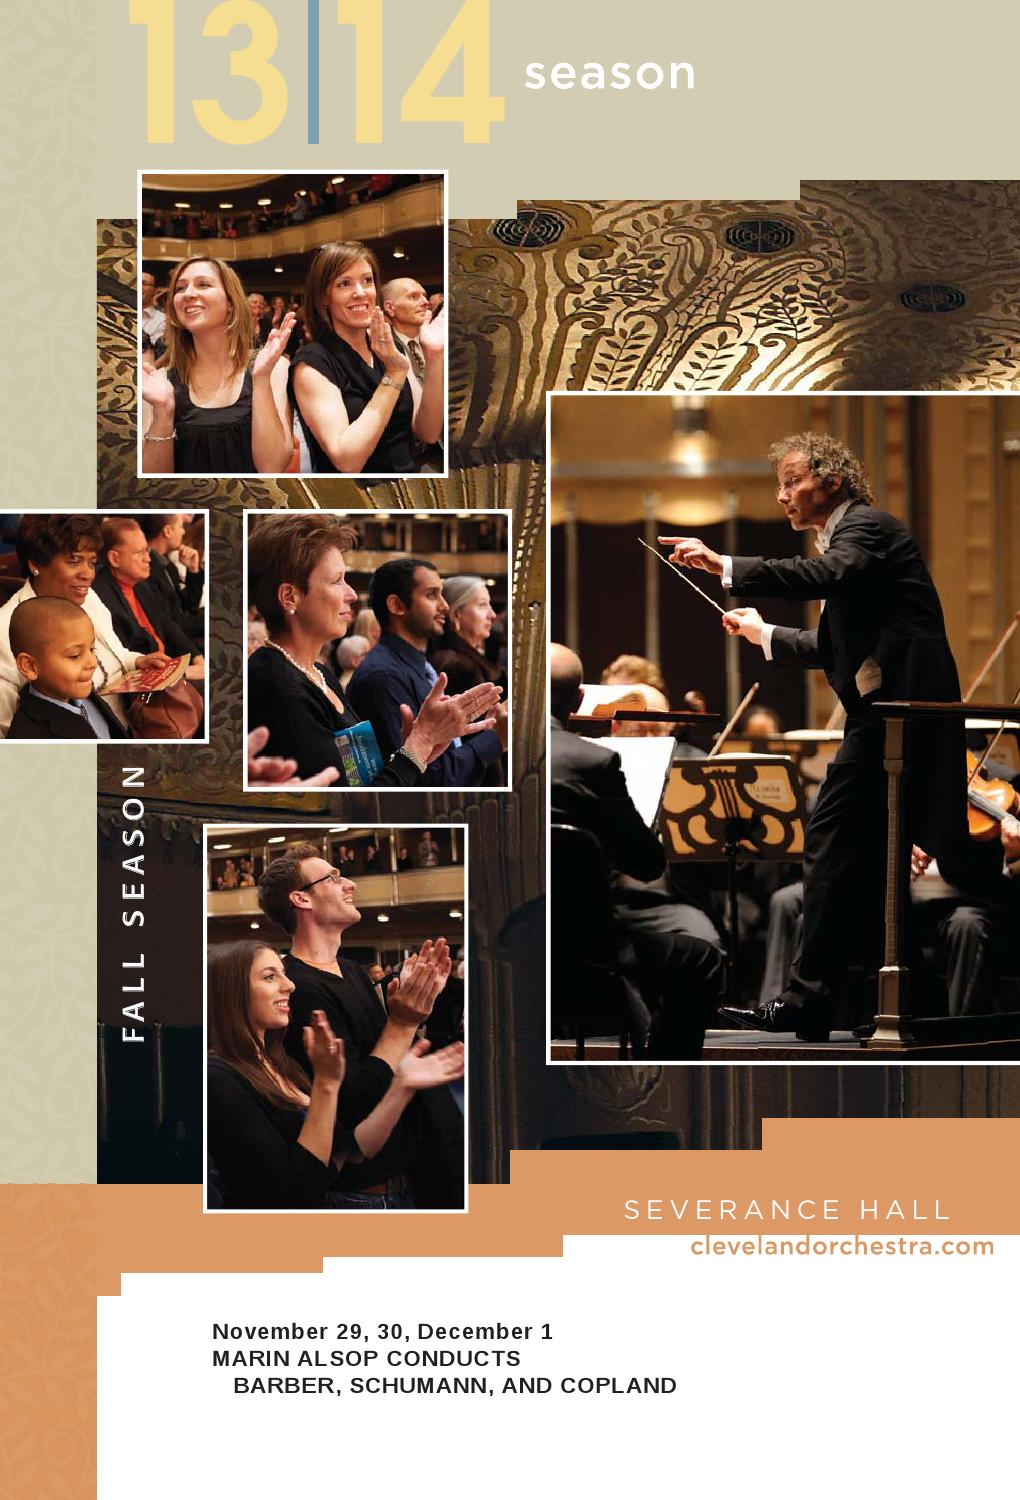 Hall Buick Gmc >> The Cleveland Orchestra November 29, 30, December 1 ...